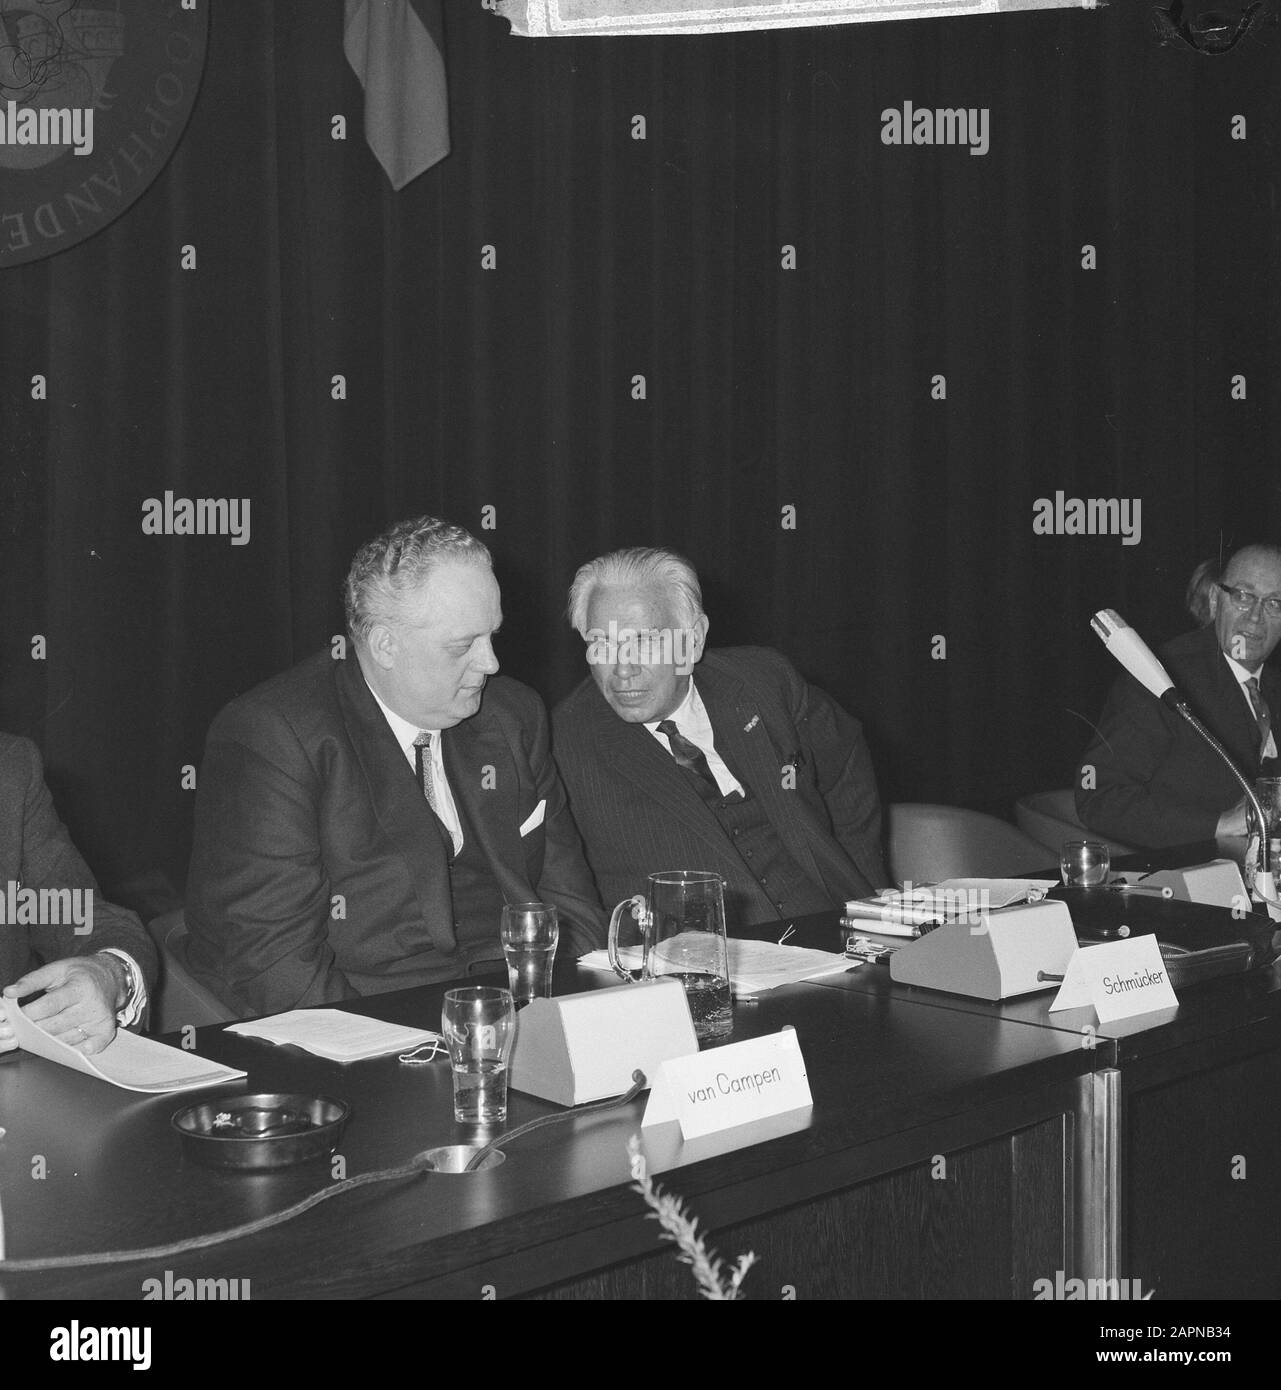 Extraordinary general meeting of the Dutch-German Chamber of Commerce on the occasion of the sixtieth anniversary  Minister K. Schmücker (l.) and Prof. dr. ir. Gelissen during an interview Date: 18 November 1965 Keywords: international relations, anniversaries, meetings Personal name: Gelissen, Henri Caspar Joseph Hubert, Schmückler, Kurt Institutional name: Chamber of Commerce Stock Photo